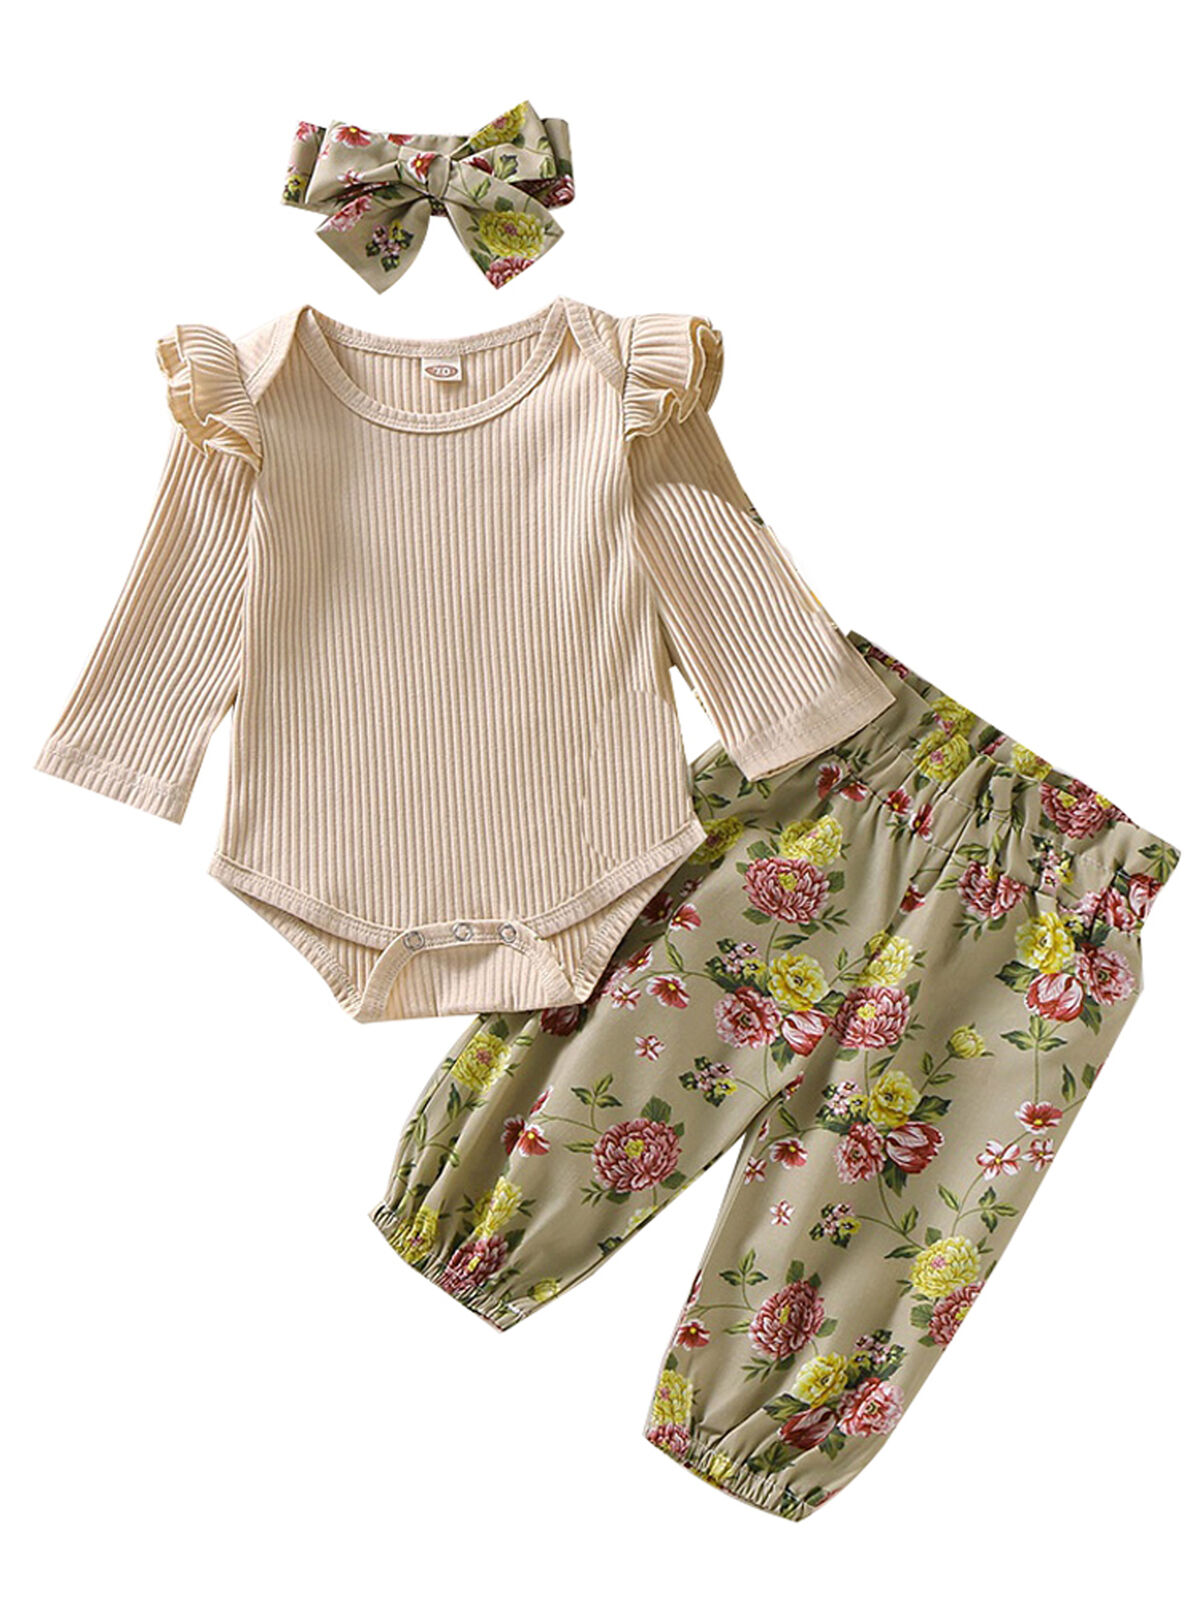 Newborn Baby Girl Romper Tops Jumpsuit Floral Pants Headband Outfit Clothes Set